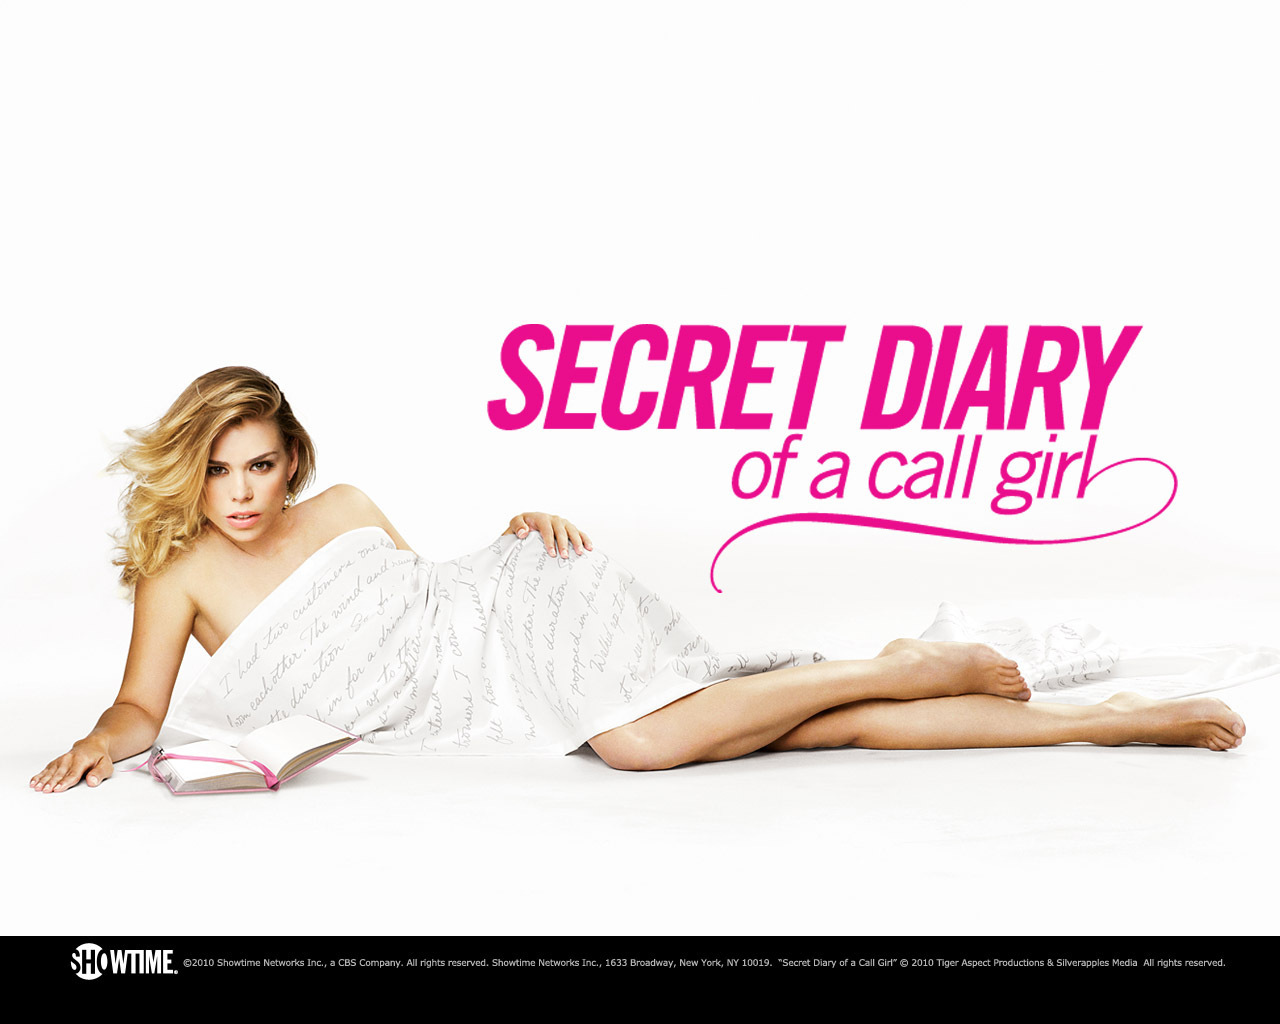 Secret diary call girl website